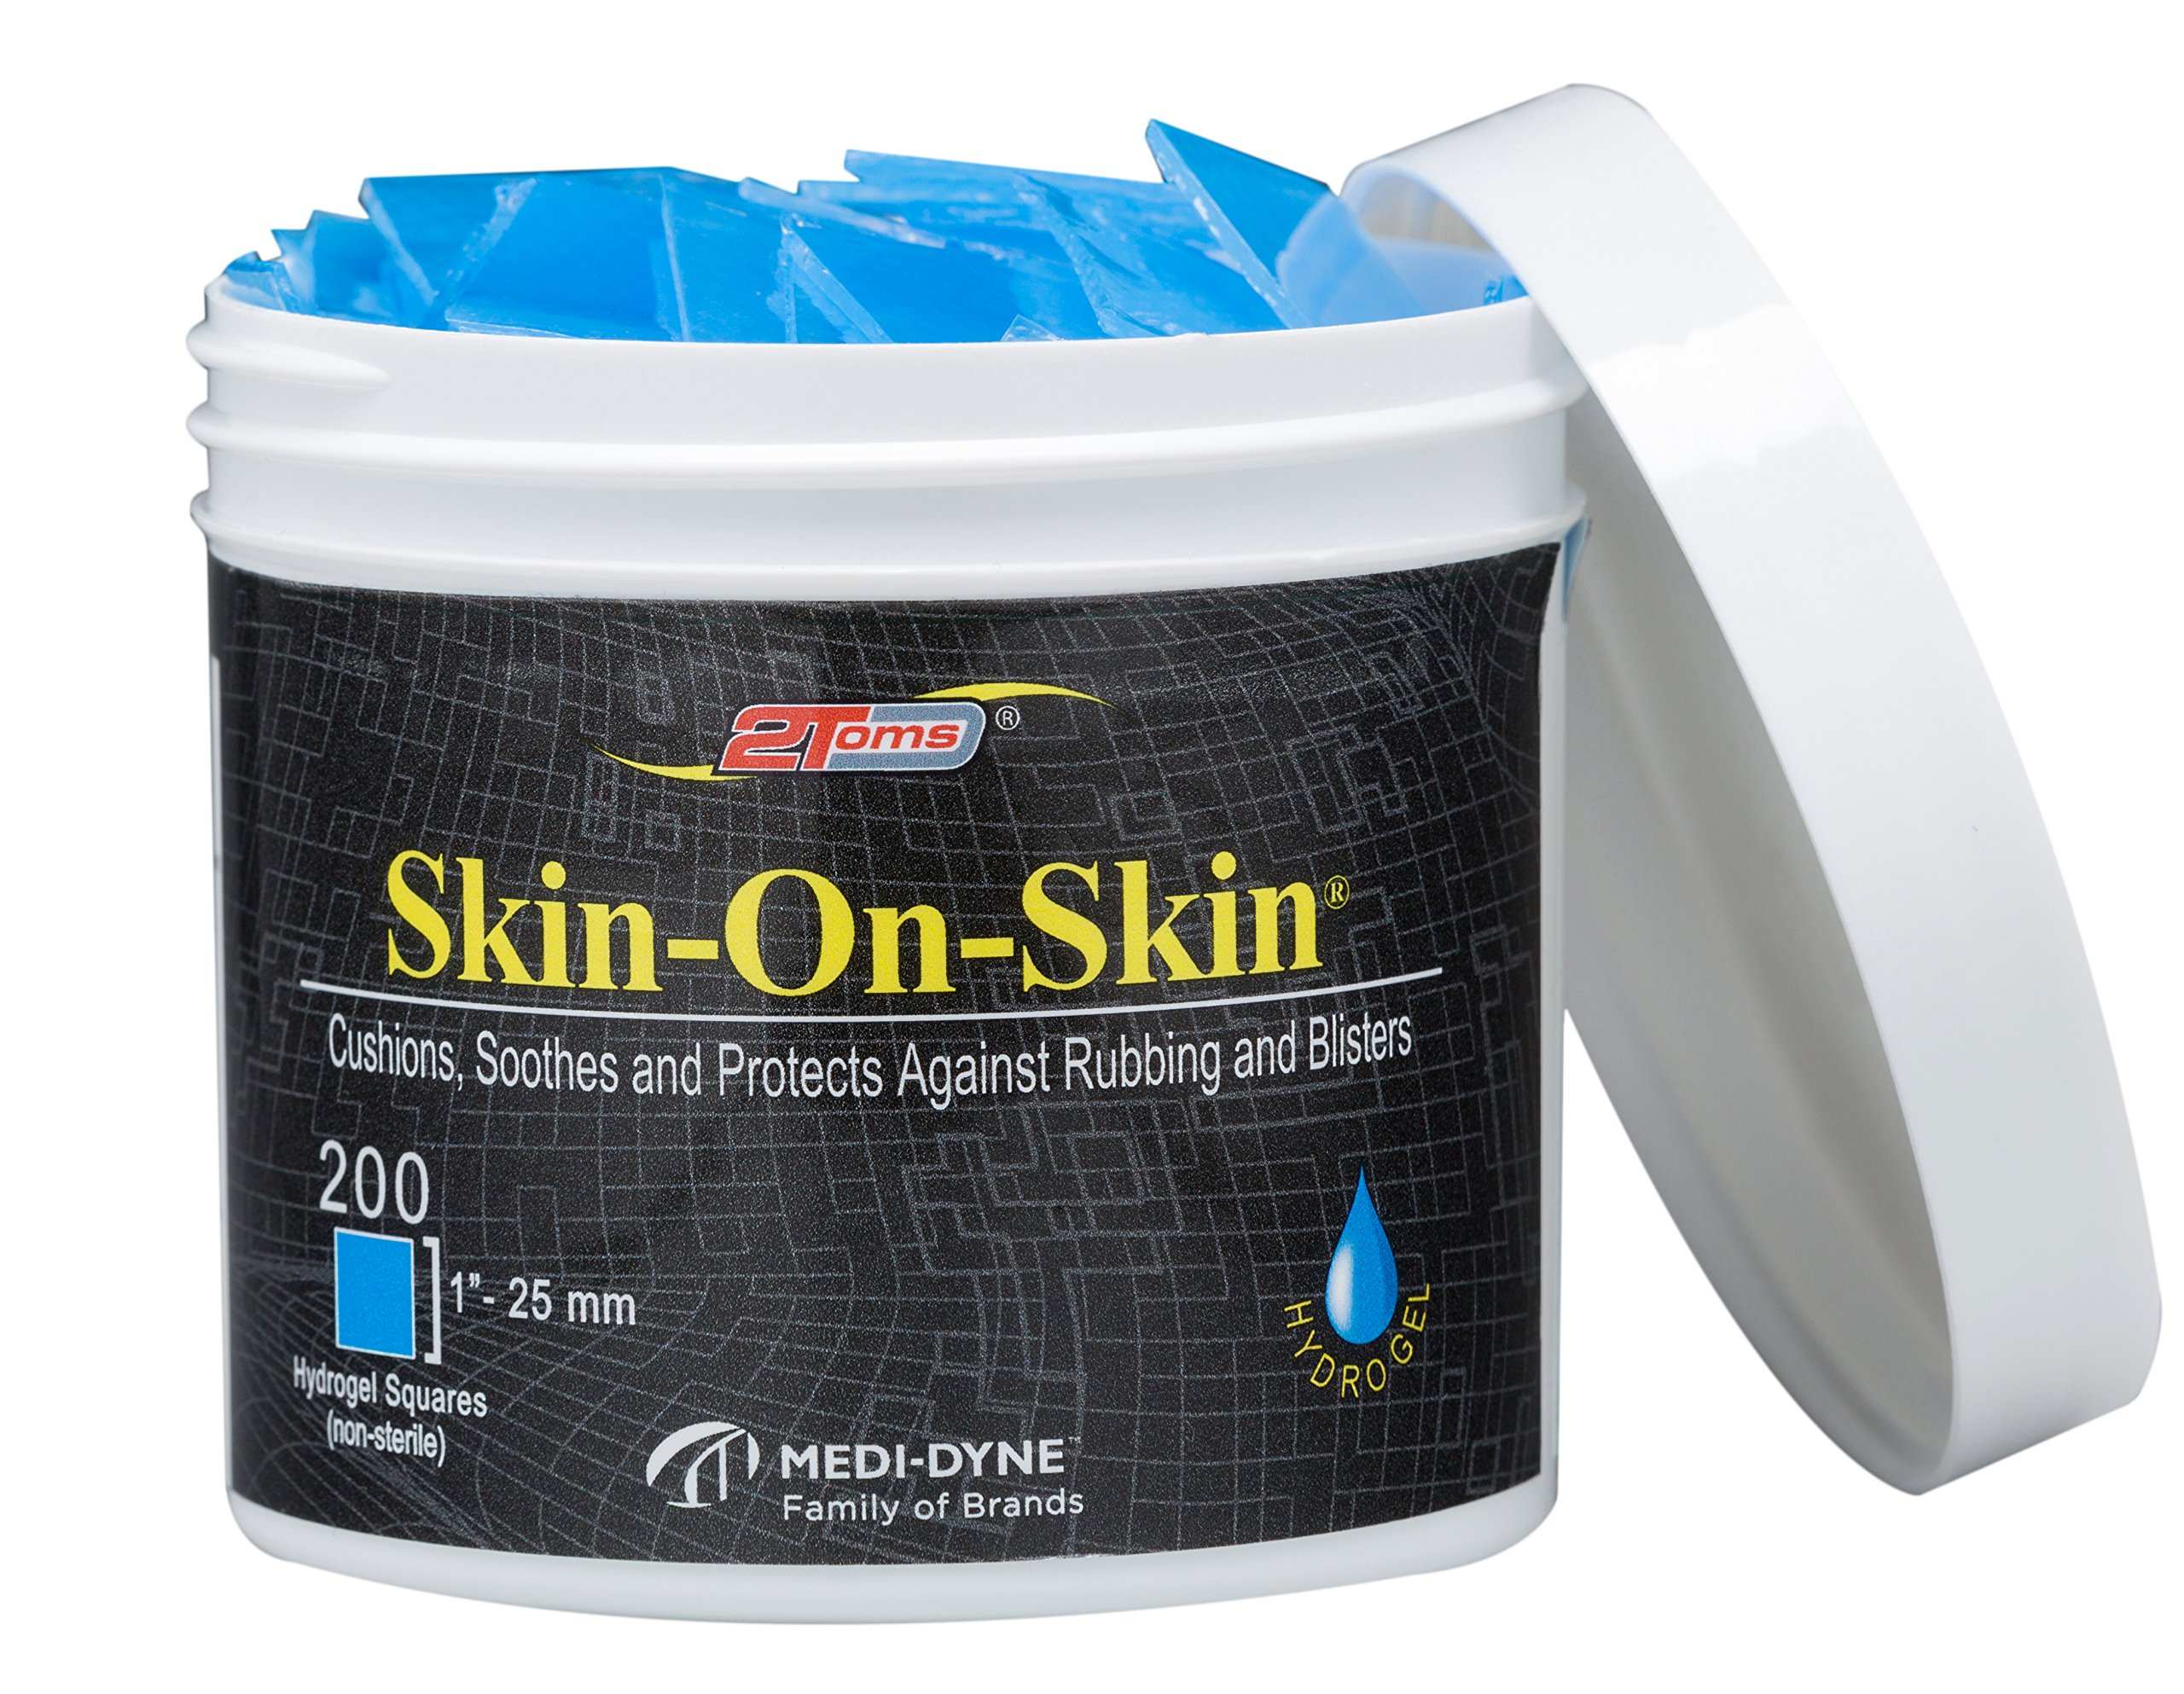 2Toms Skin-On-Skin Soothing Hydrogel Square Pads for Blister Protection and Skin Pain Relief, 200 Squares (1'')